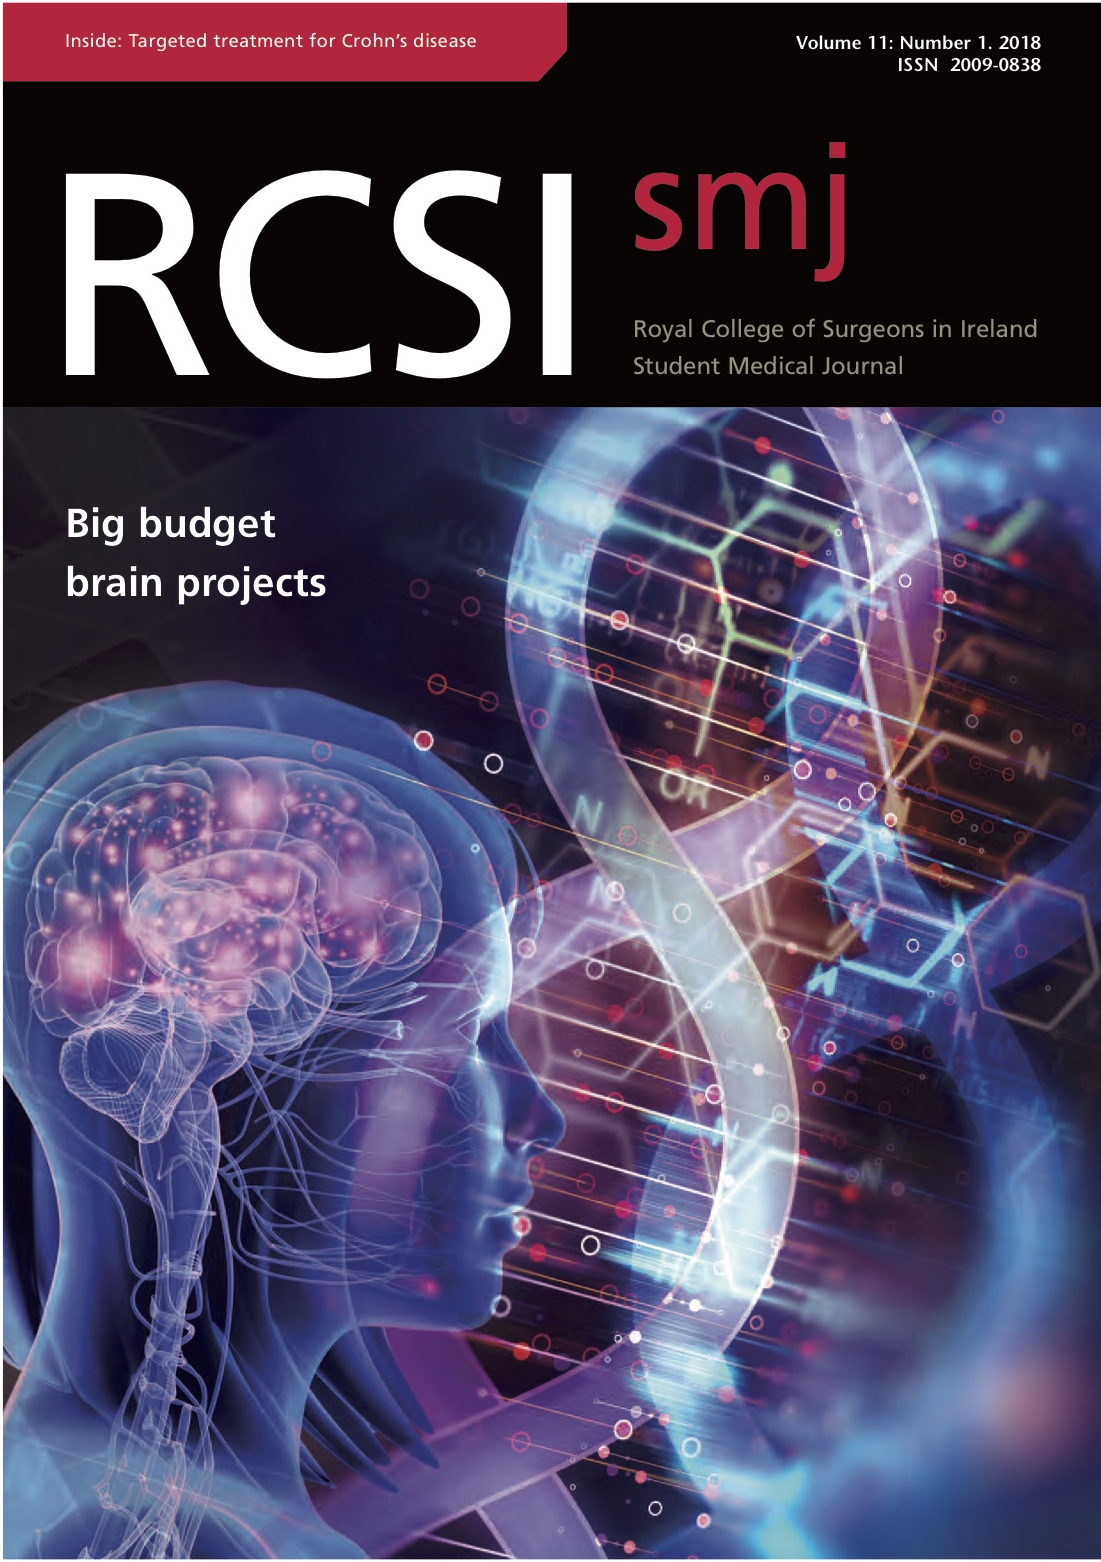 RCSIsmj Vol 11 Cover